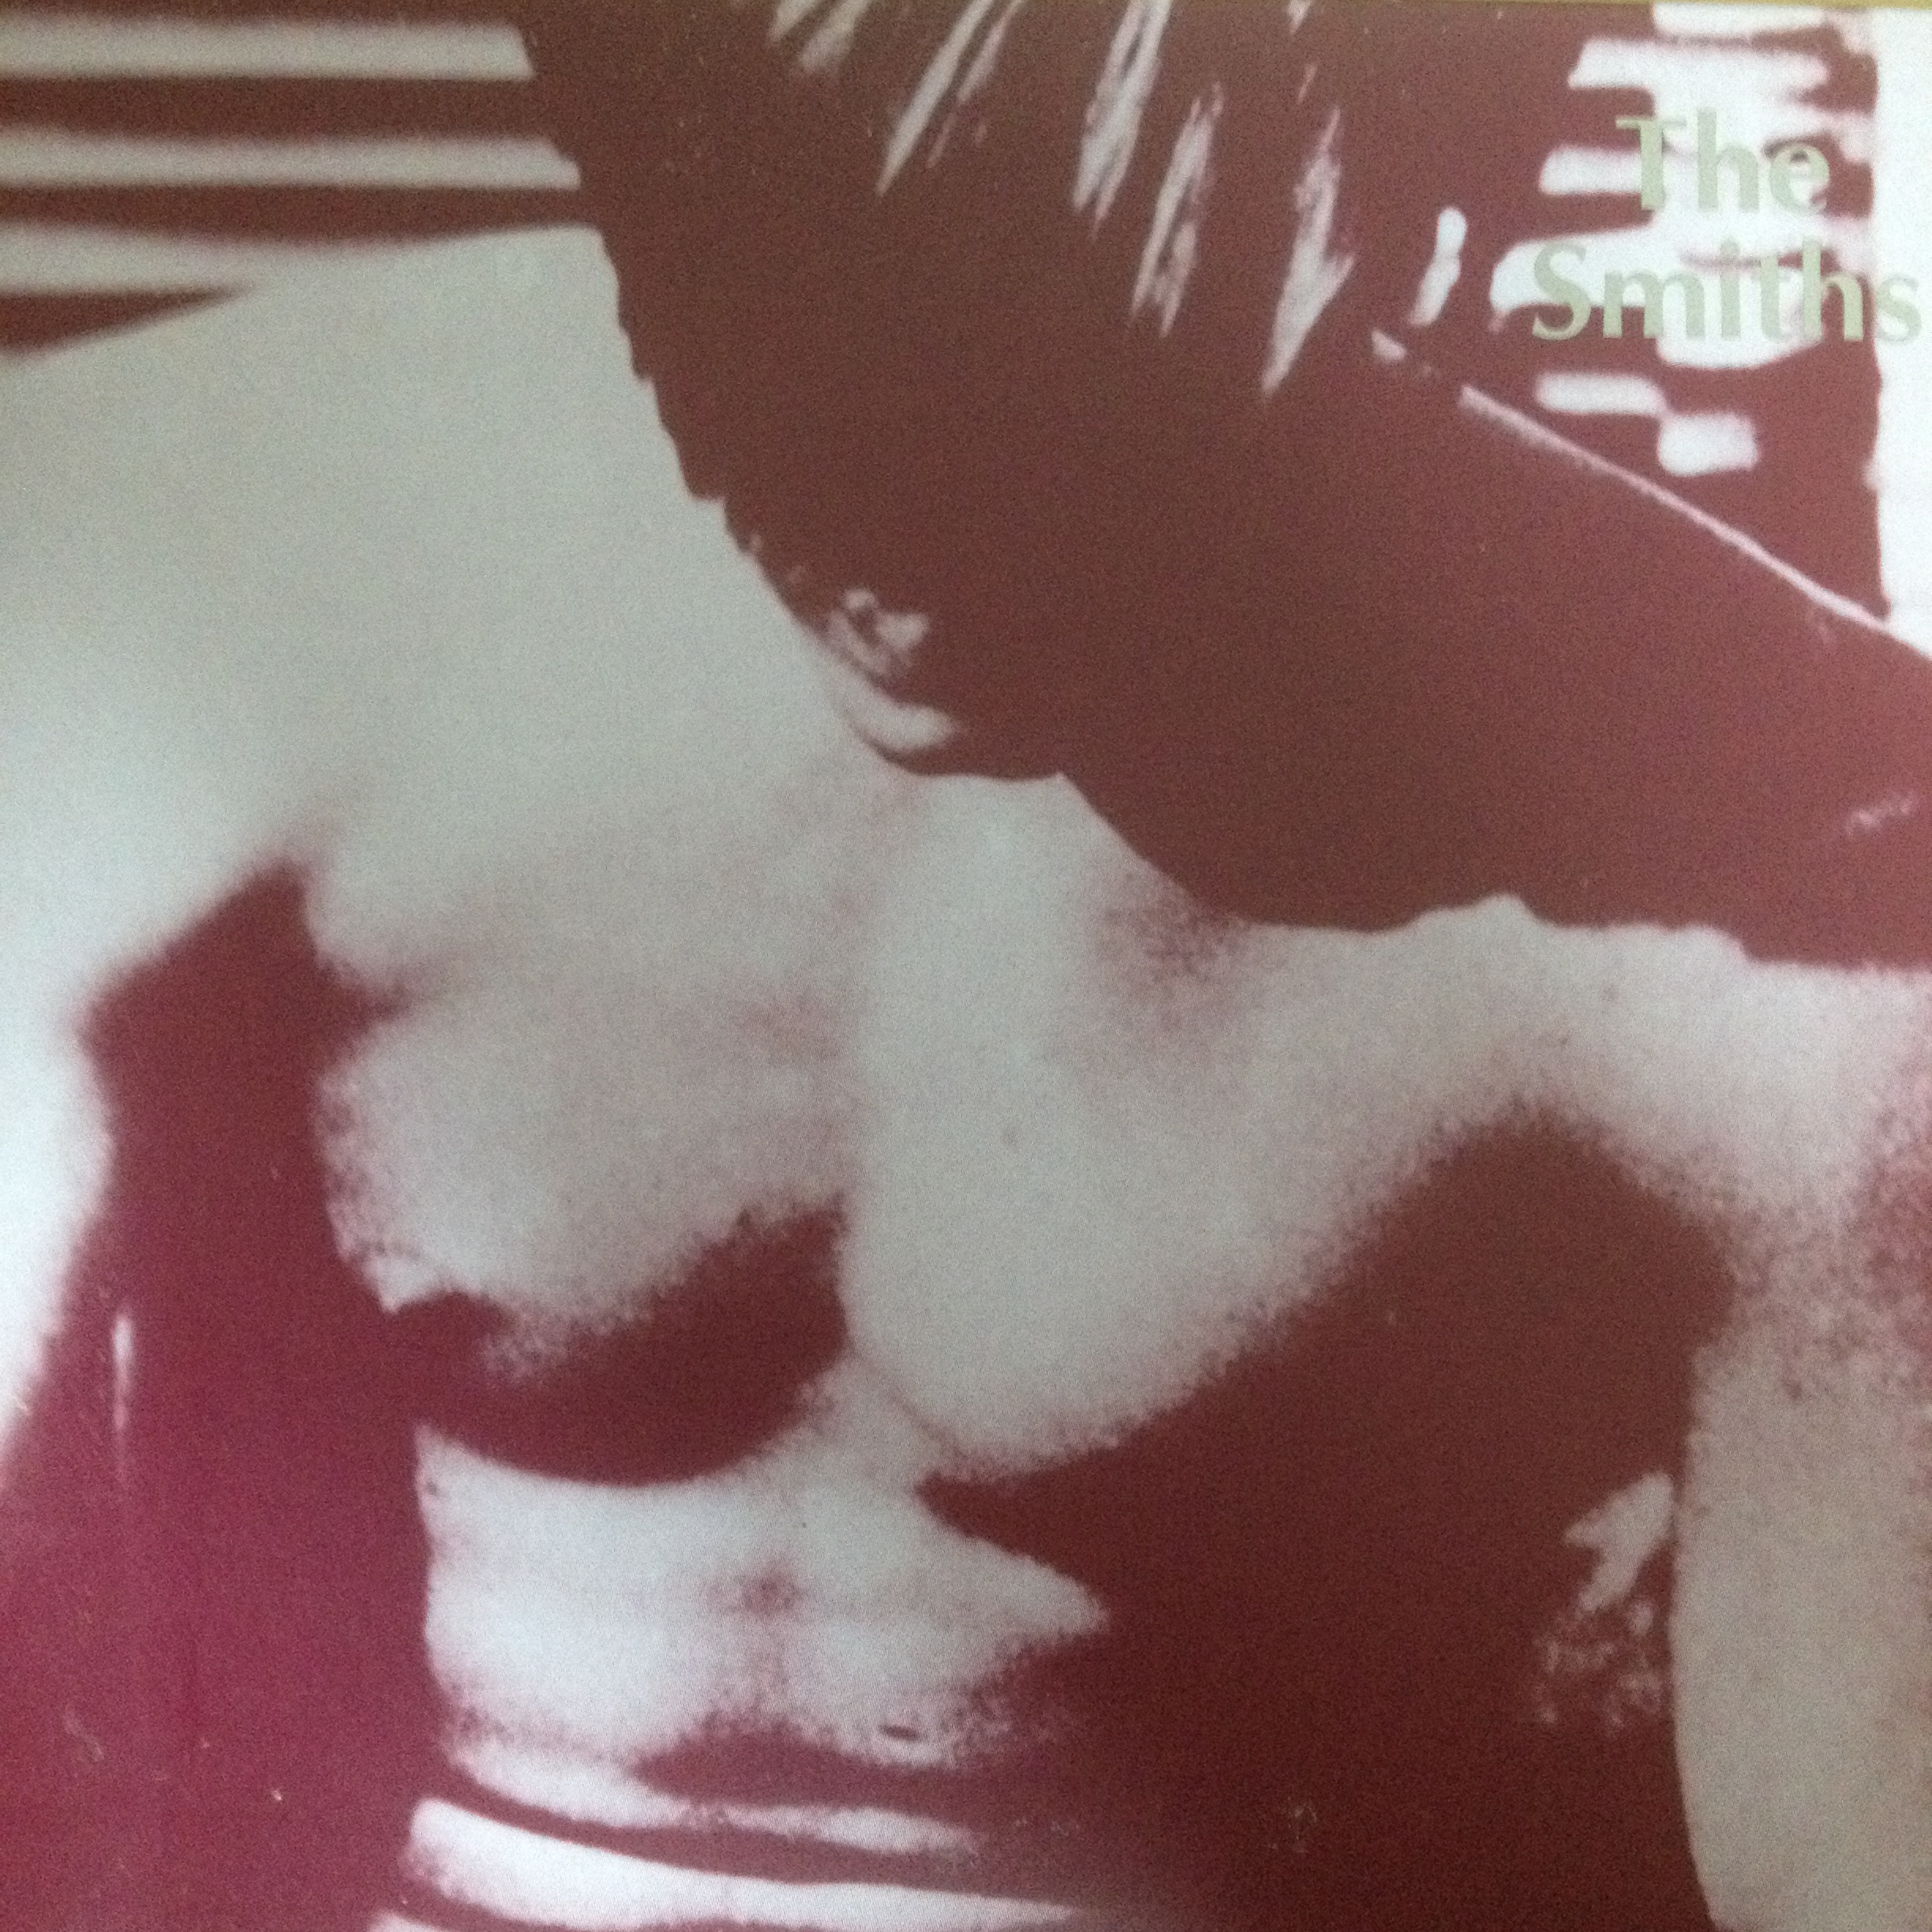 THE SMITHS 「WHAT DIFFERENCE DOES IT MAKE?」